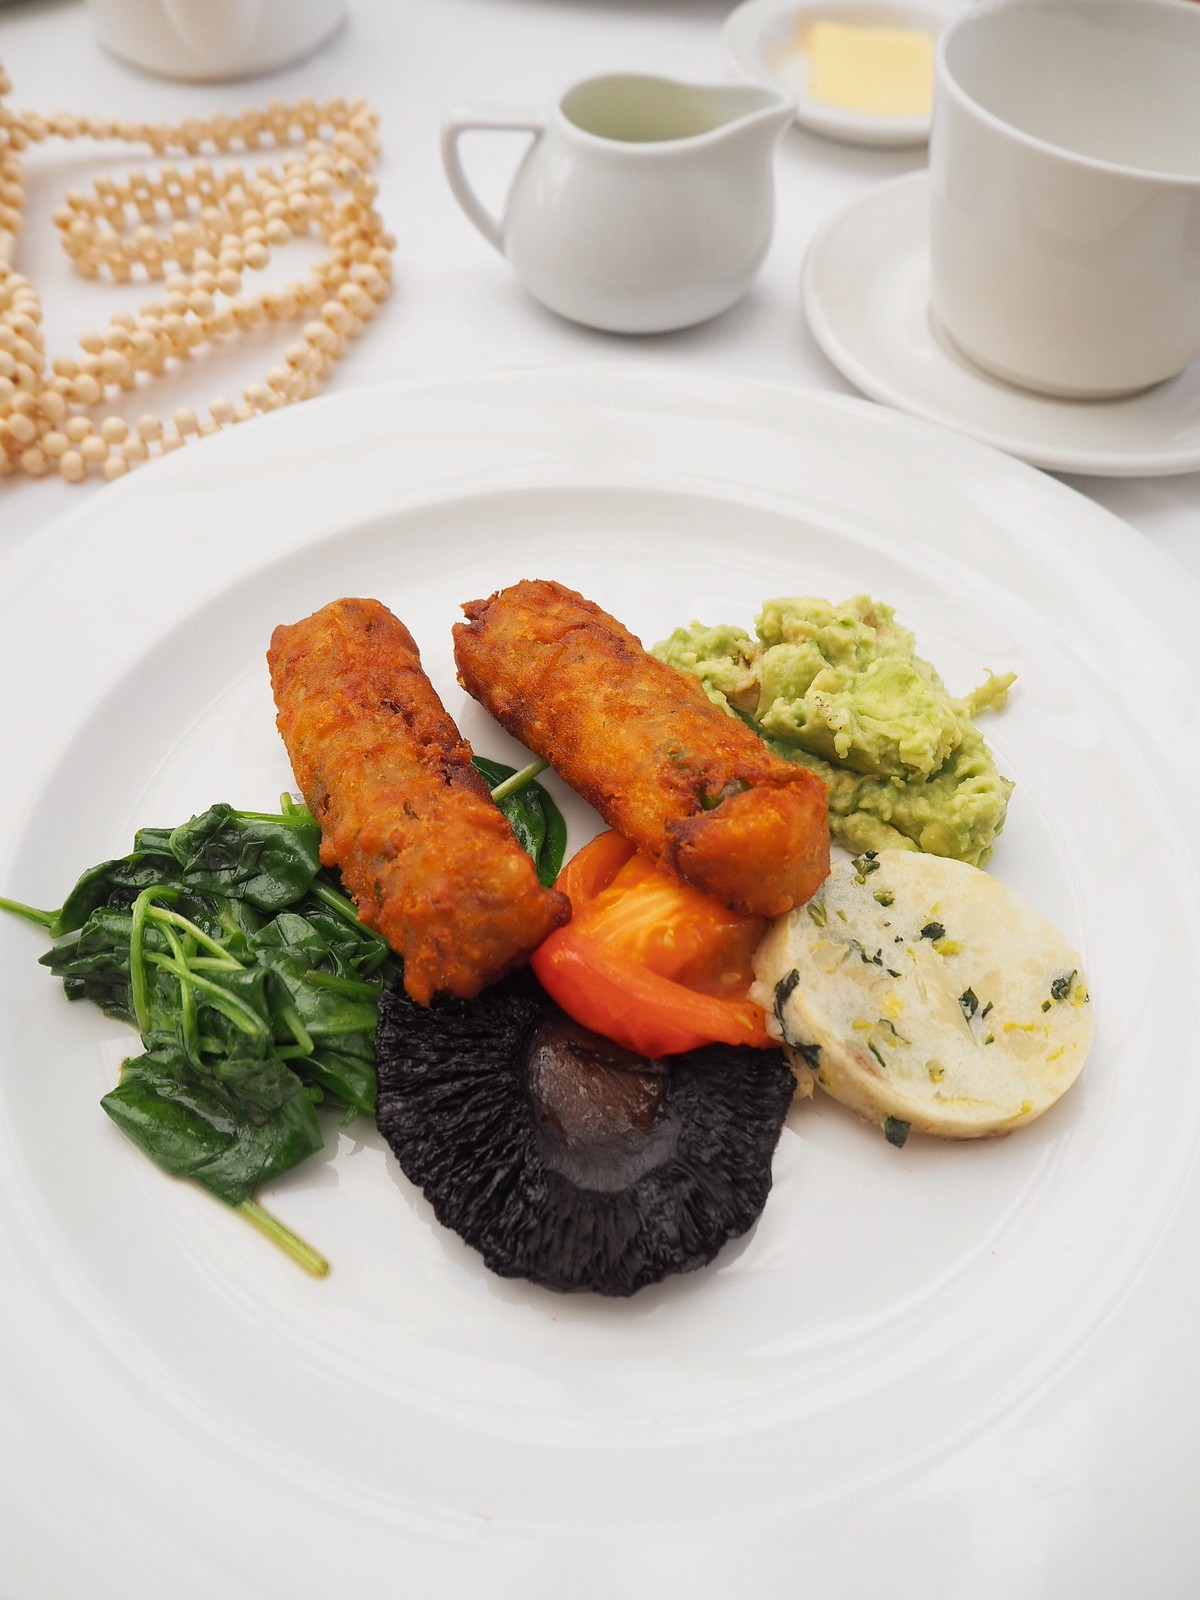 Charlton house hotel and spa vegan options